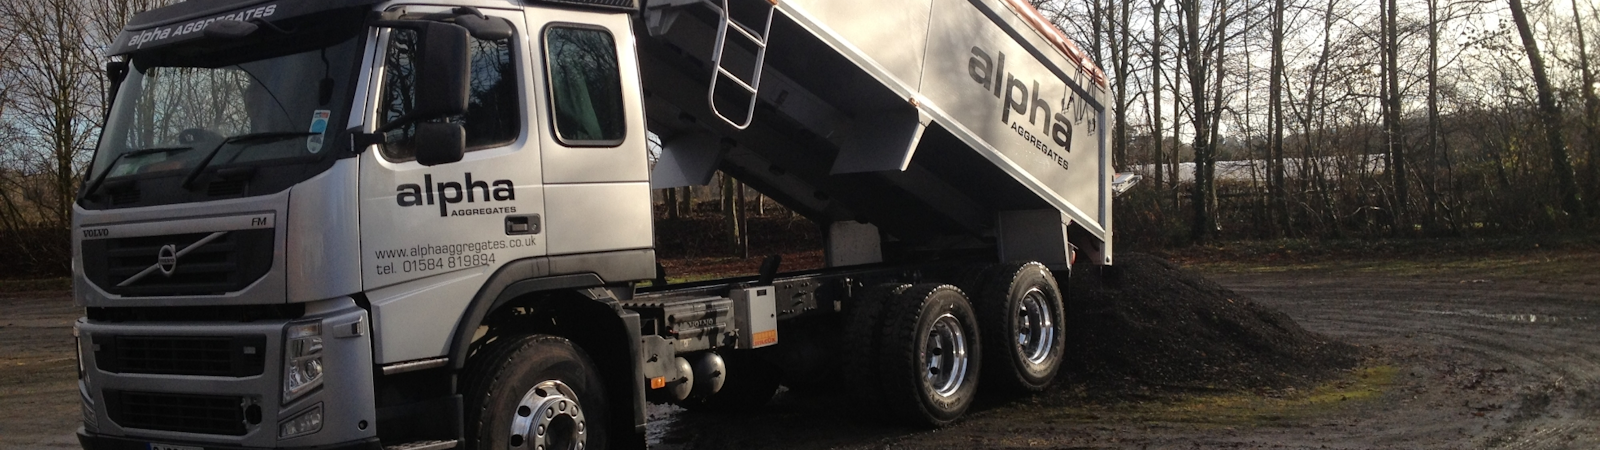 Aggregate suppliers of sand, gravel and decorative stone